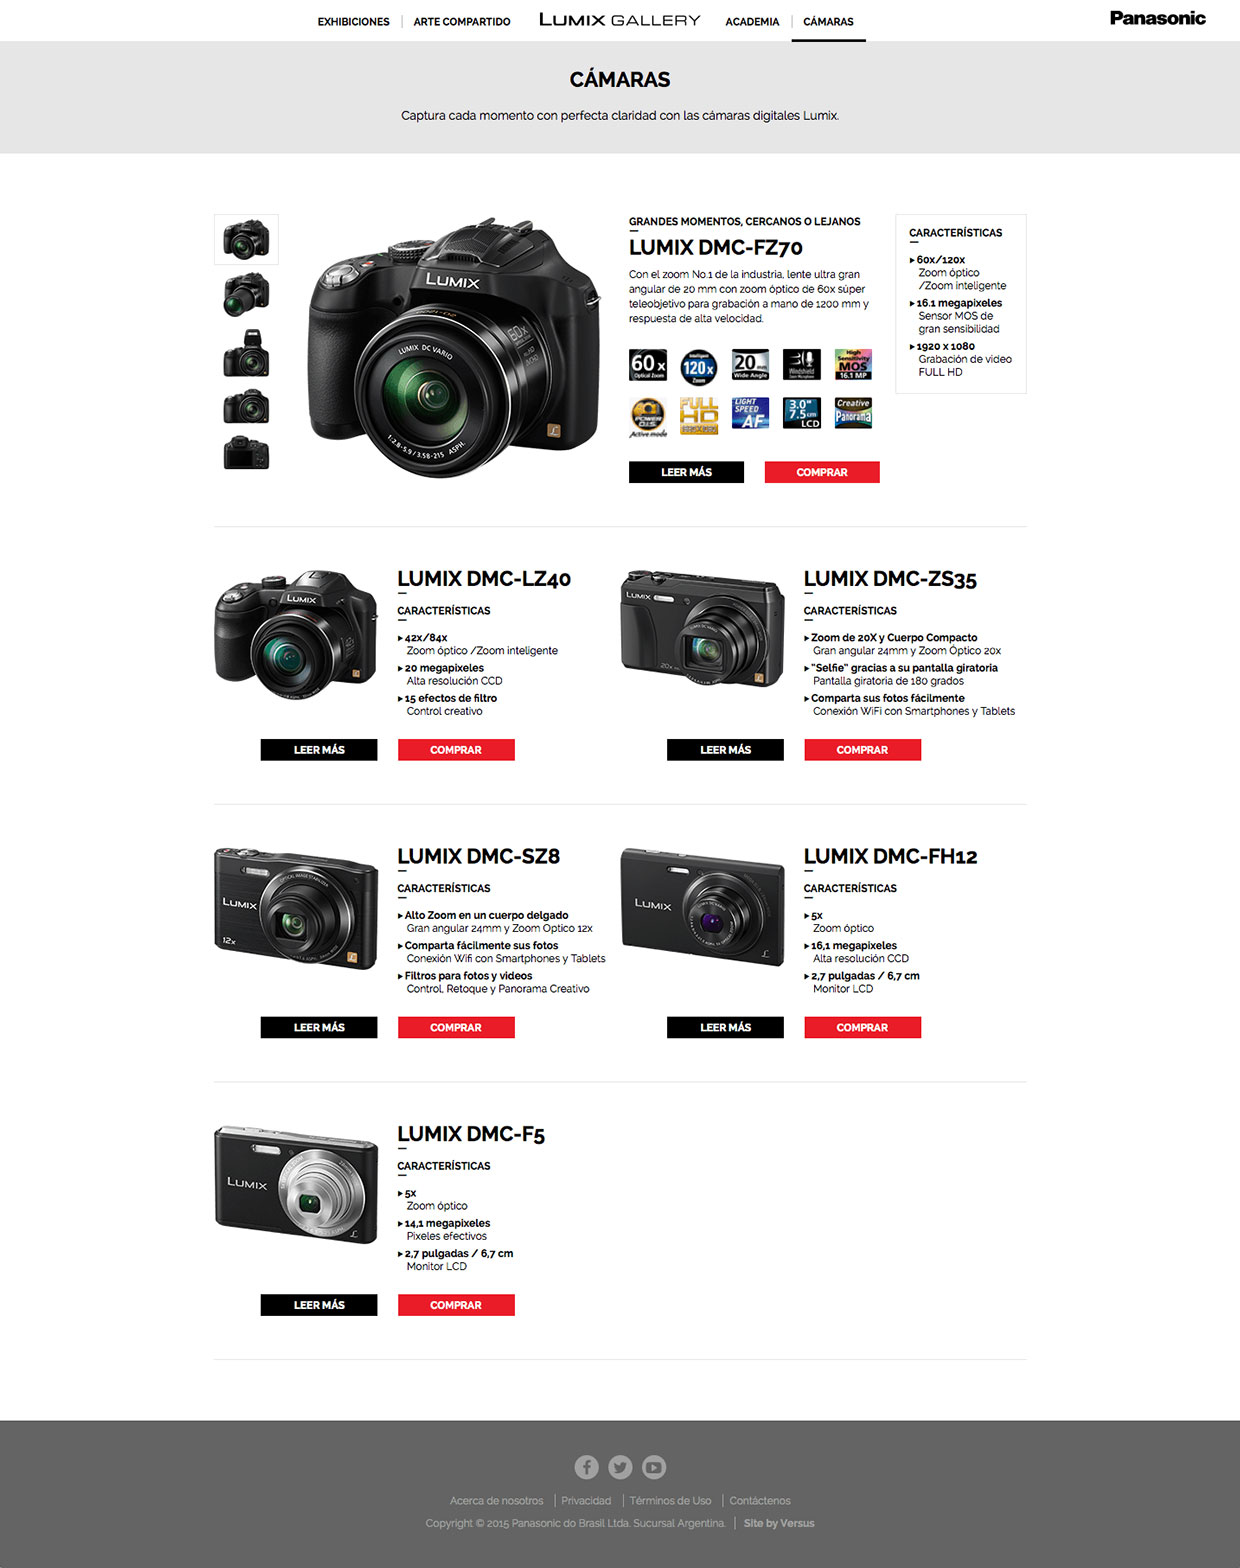 Lumix Gallery Line-Up